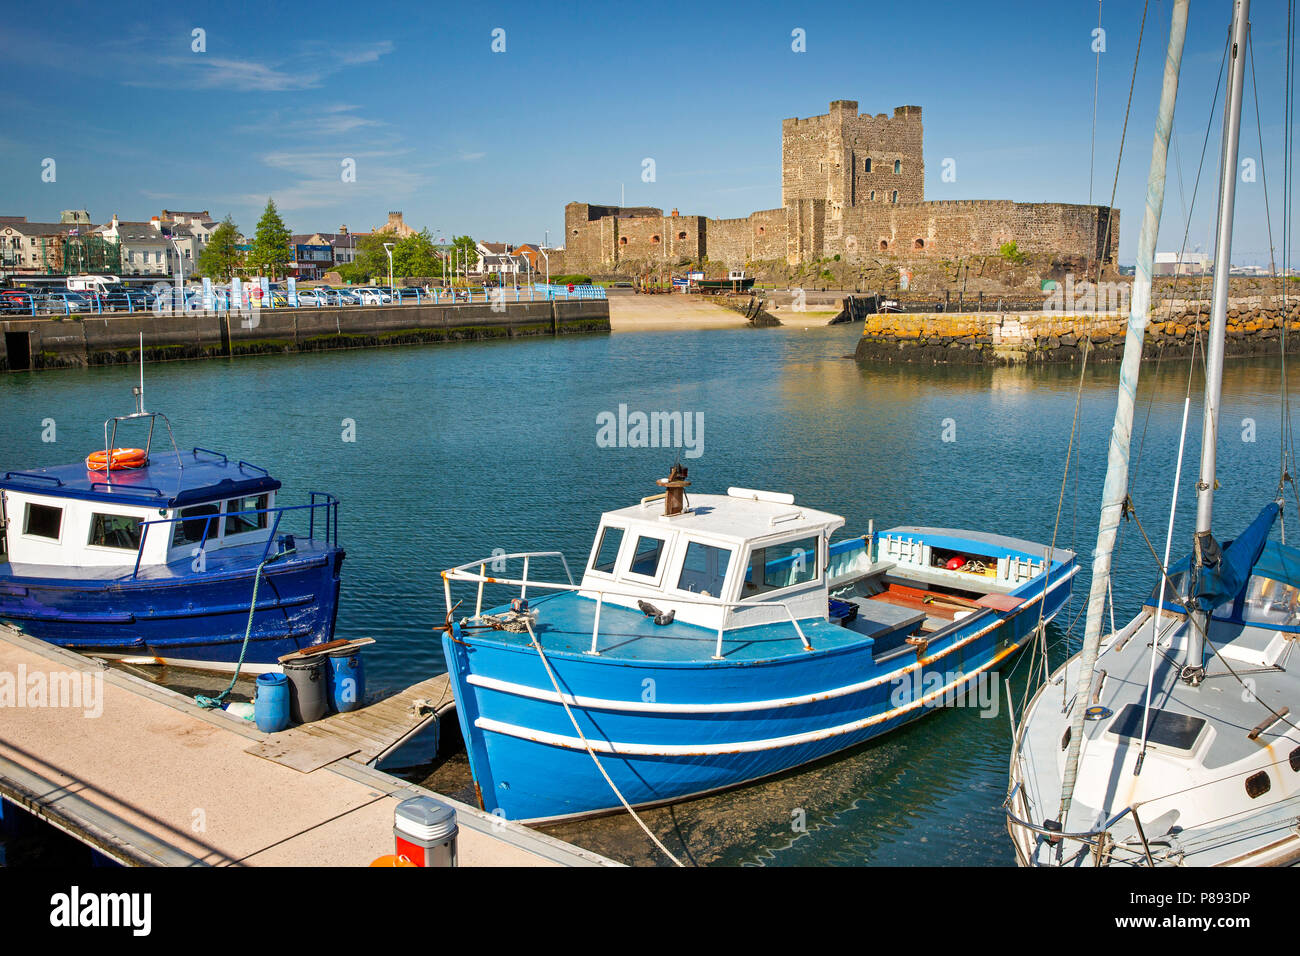 UK, Northern Ireland, Co Antrim, Carrickfergus, Norman Castle from across the harbour at high tide - Stock Image